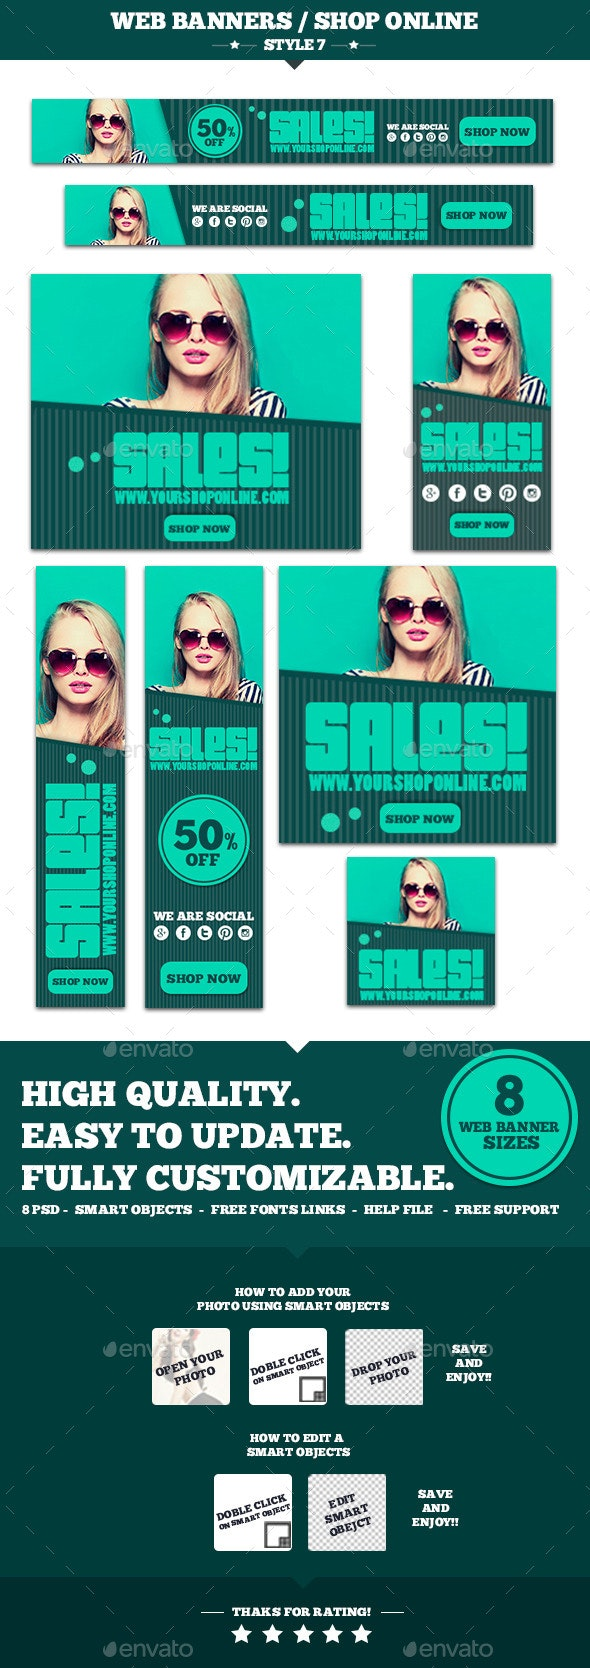 Web Banners Shop Online Style 7 - Banners & Ads Web Elements